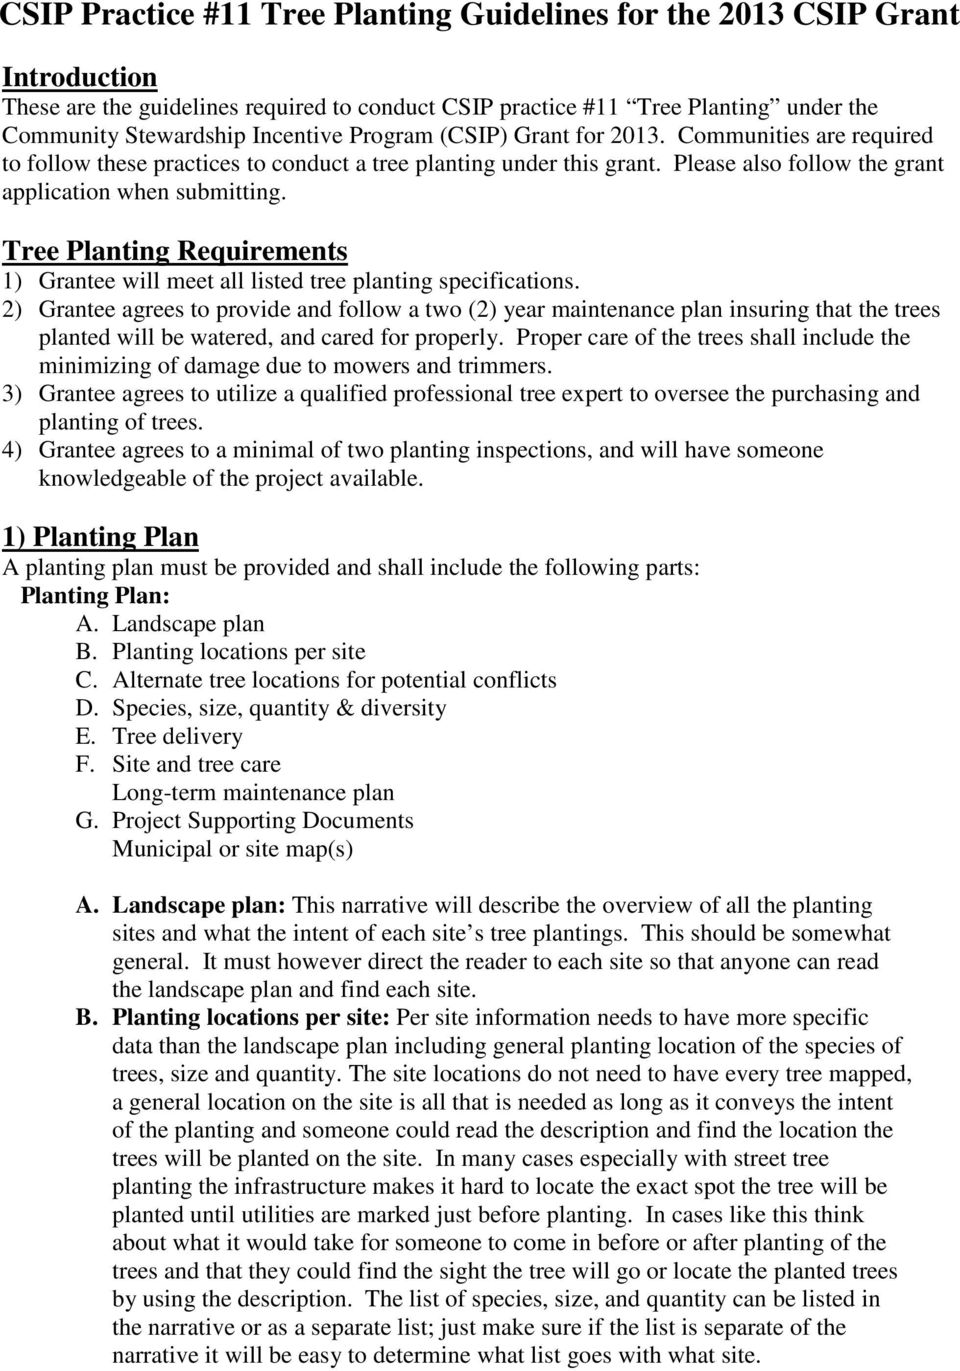 Tree Planting Requirements 1) Grantee will meet all listed tree planting specifications.